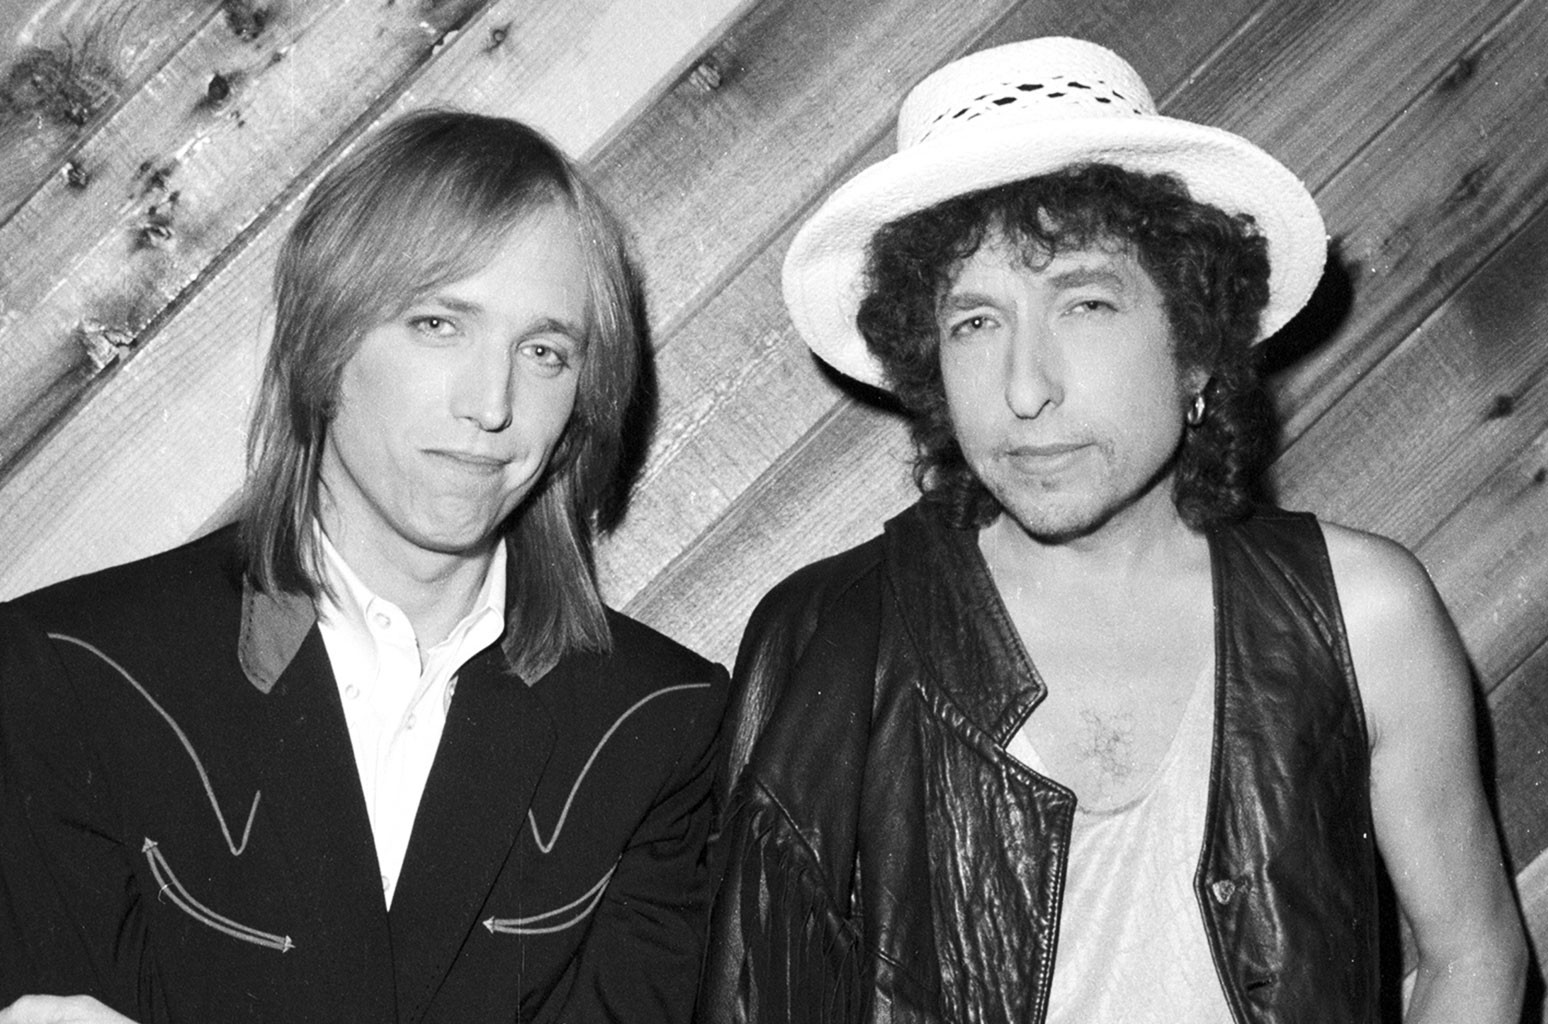 Bob Dylan and Tom Petty